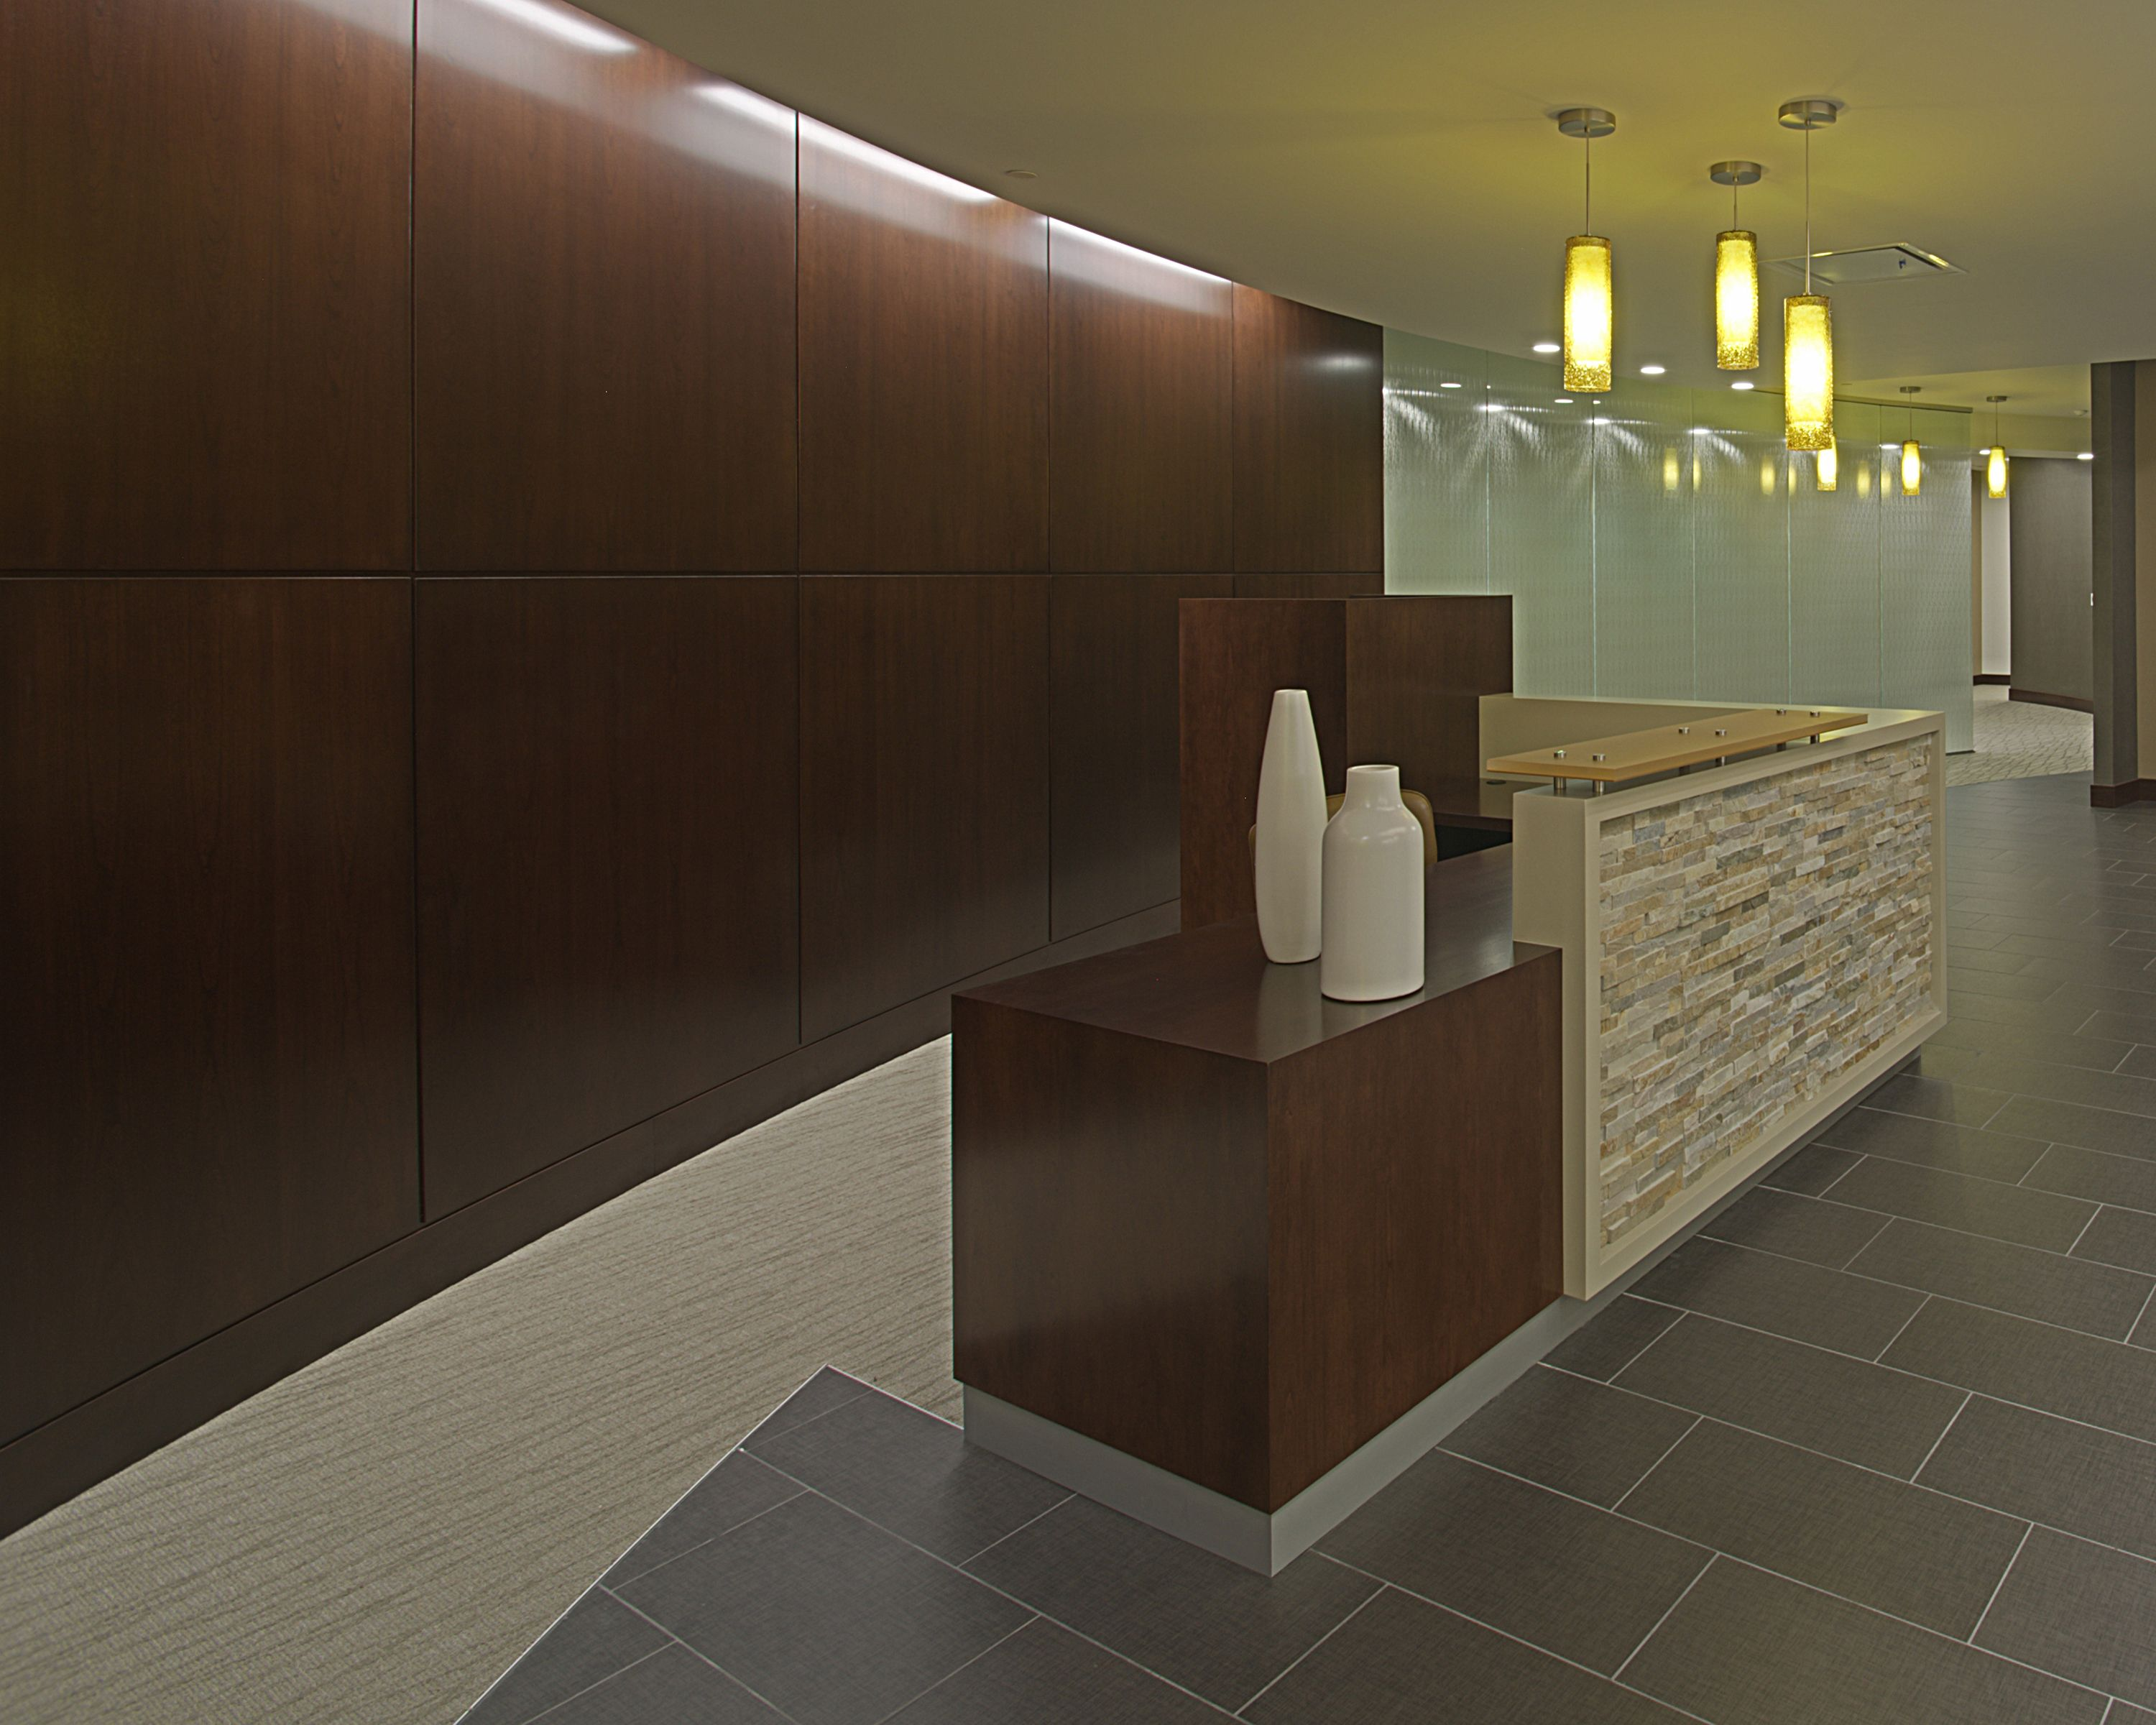 Reception Desk Ceramic Tile Pendant Glass Curved Wall